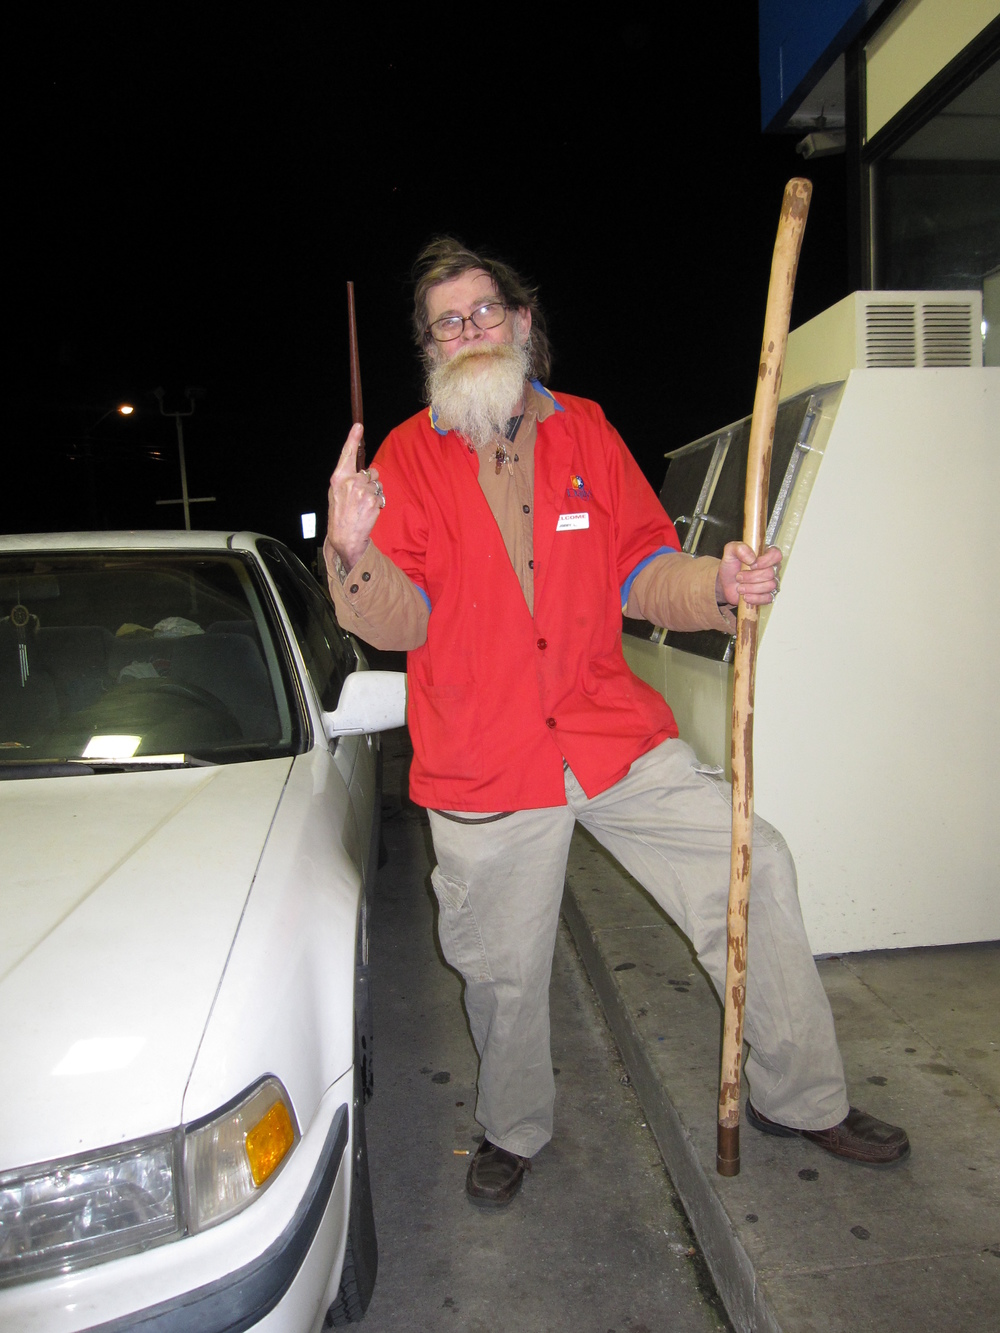 GAS STATION WIZARD